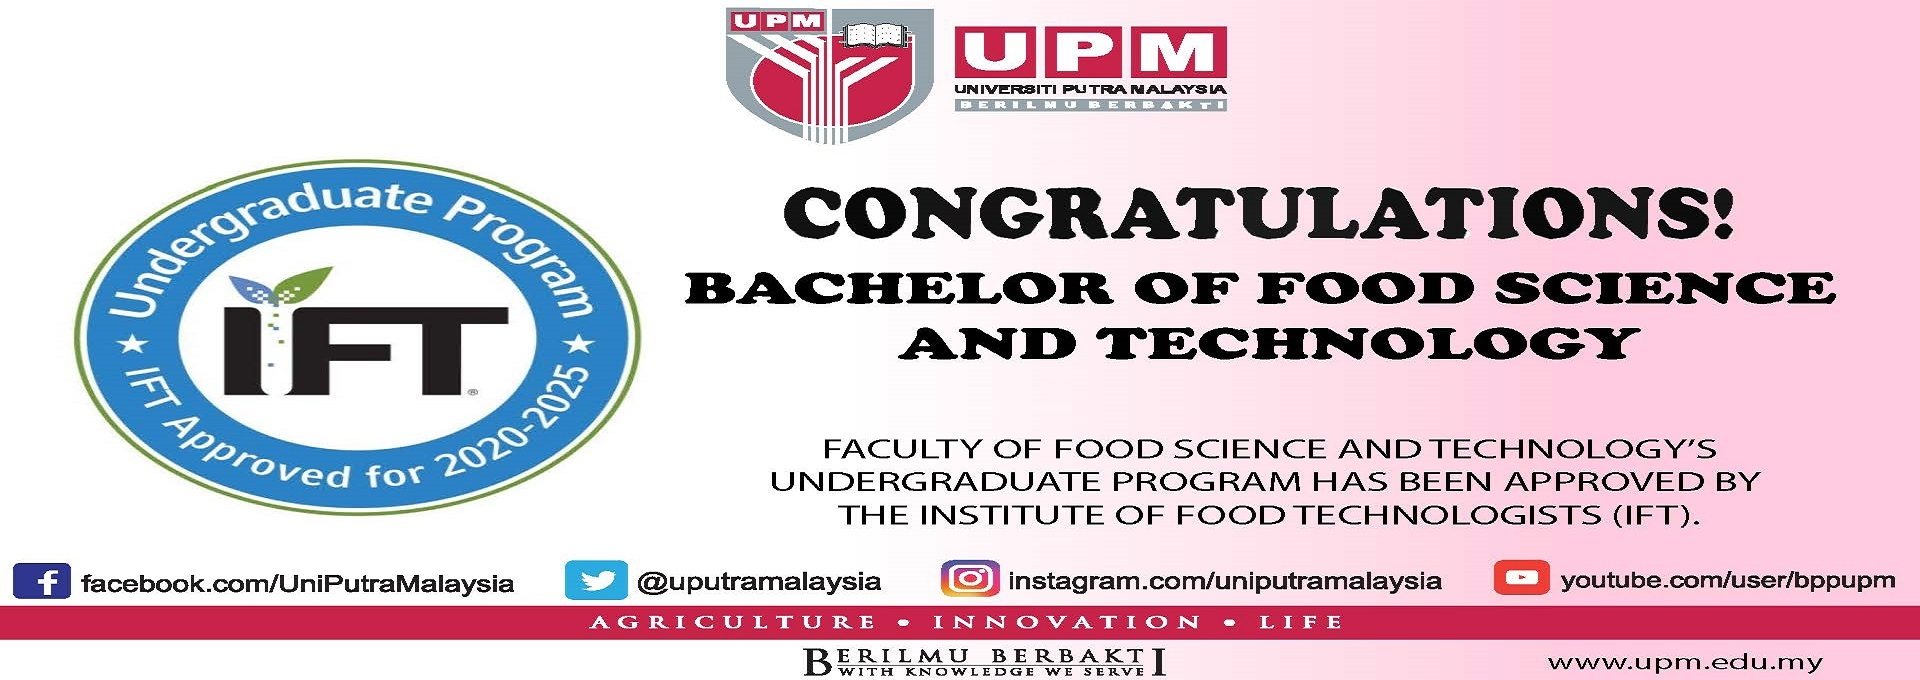 BSTM Program Successfully Approved By Institute of Food Technologist (IFT)